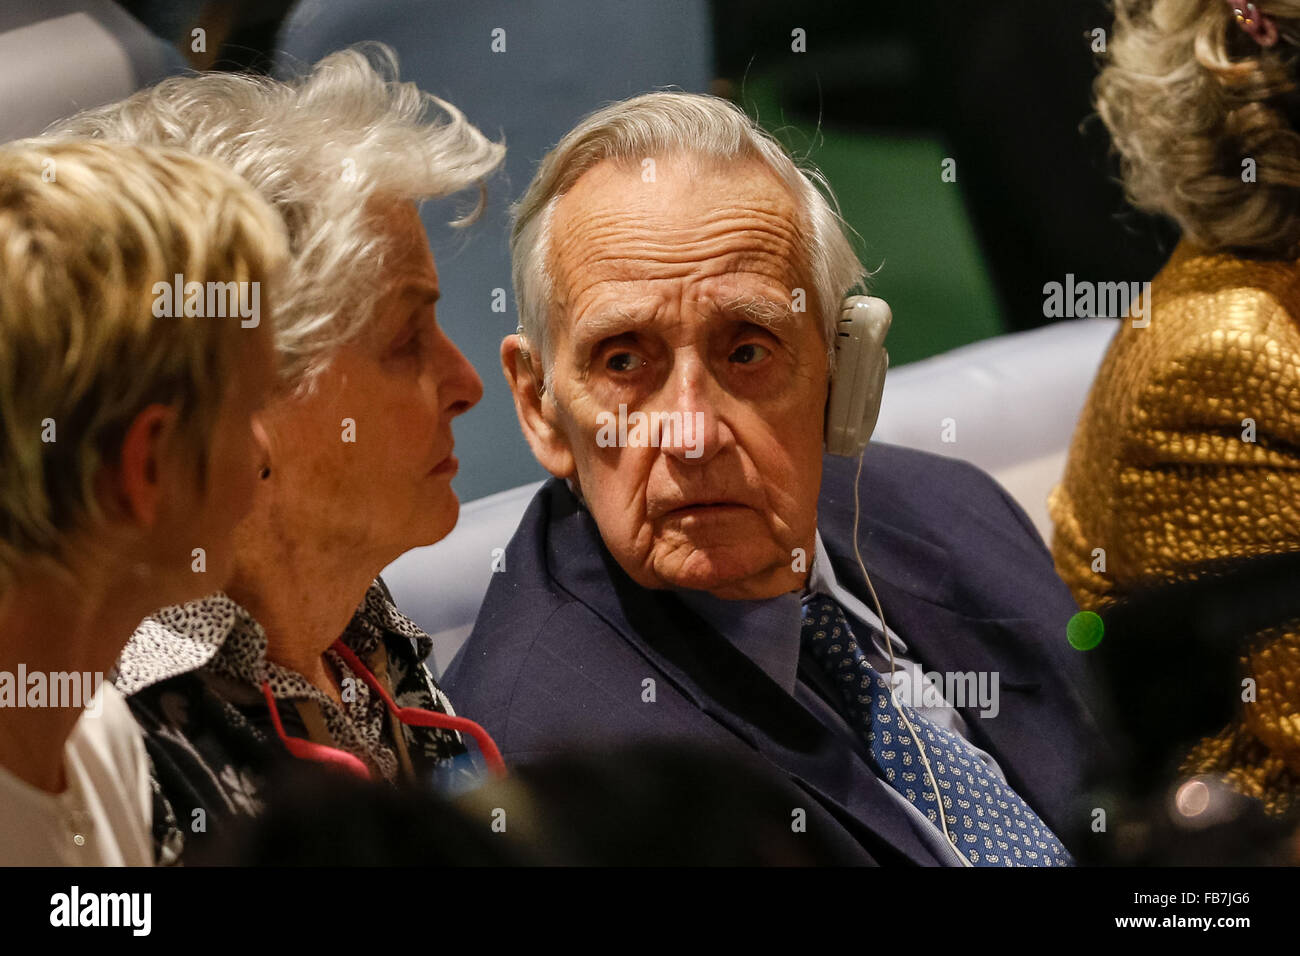 (160111) -- UNITED NATIONS, Jan. 11, 2016 (Xinhua) -- Sir Brian Urquhart(R), one of its very first staff members Stock Photo